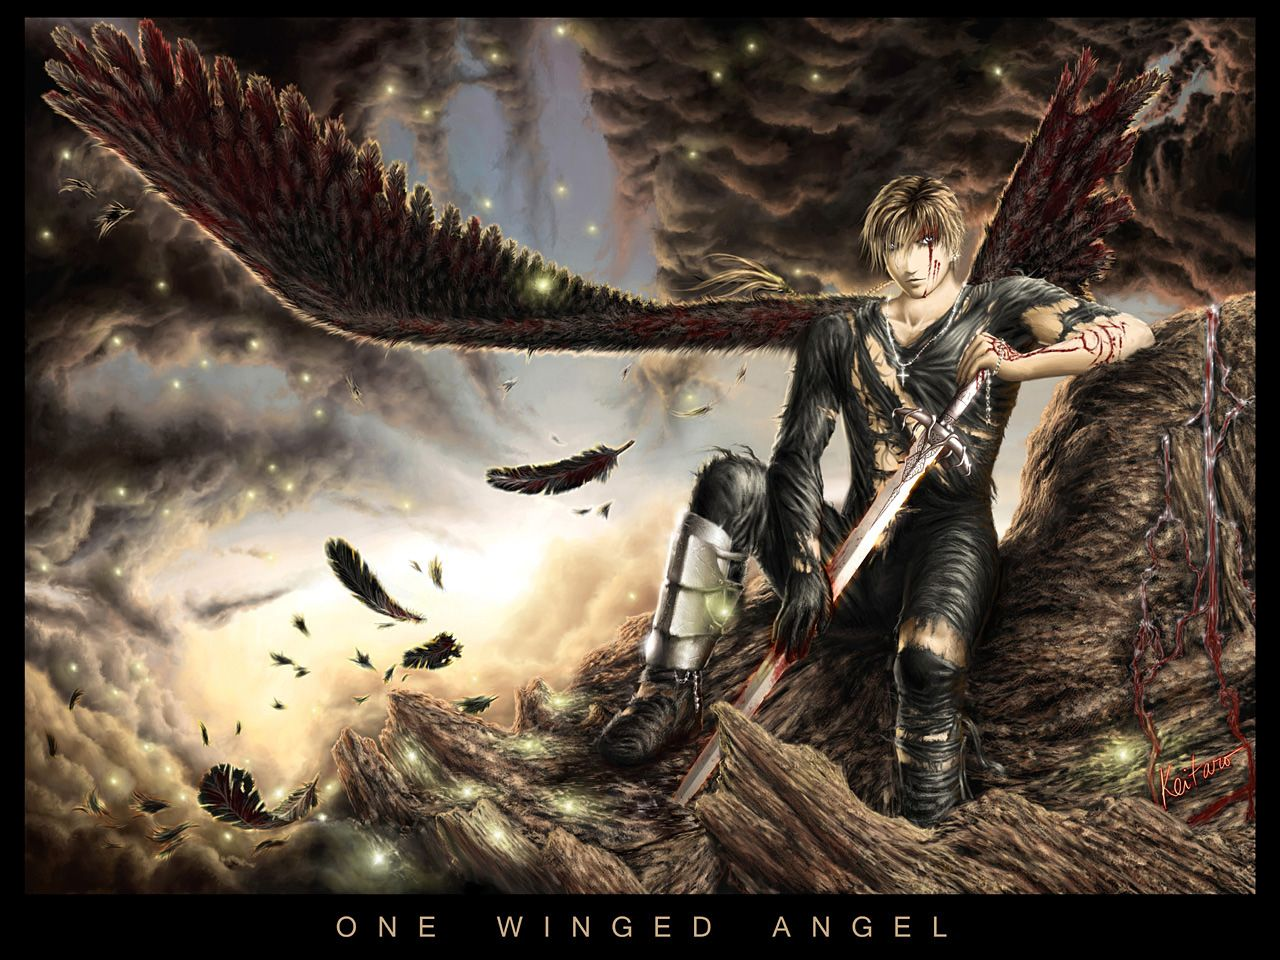 One winged angel warrior wallpaper from angels wallpapers battle